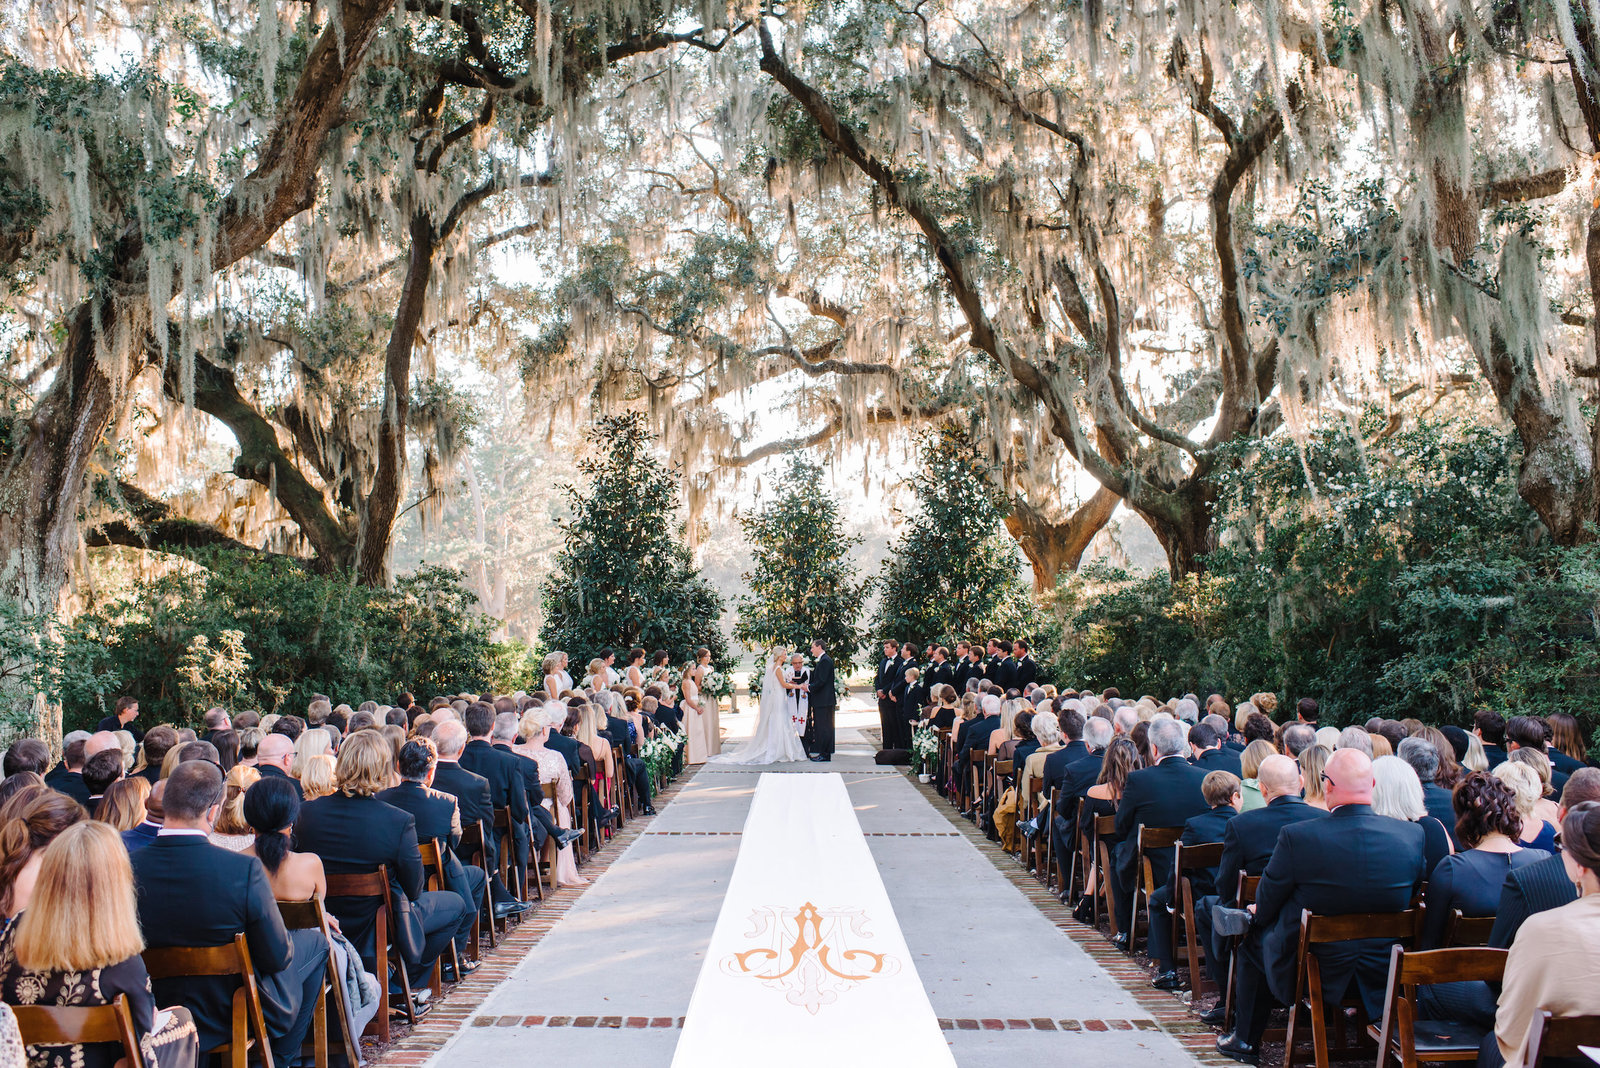 Caledonia Golf & Fish Club wedding outside of Myrtle Beach, SC by Pasha Belman Photographer